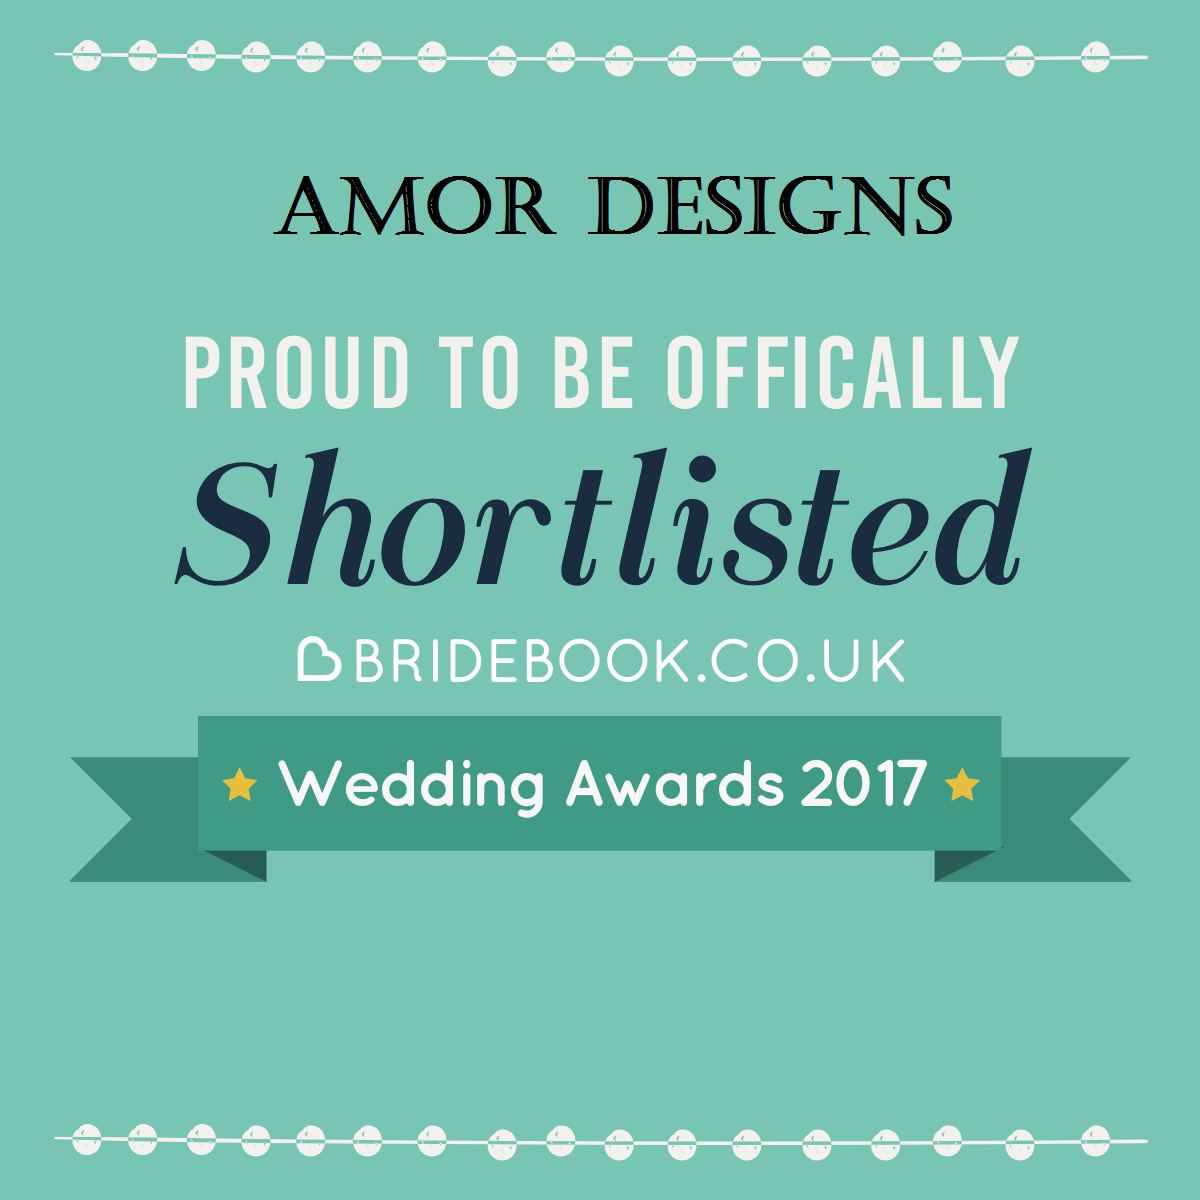 Amor Designs shortlisted for wedding stationery 2007